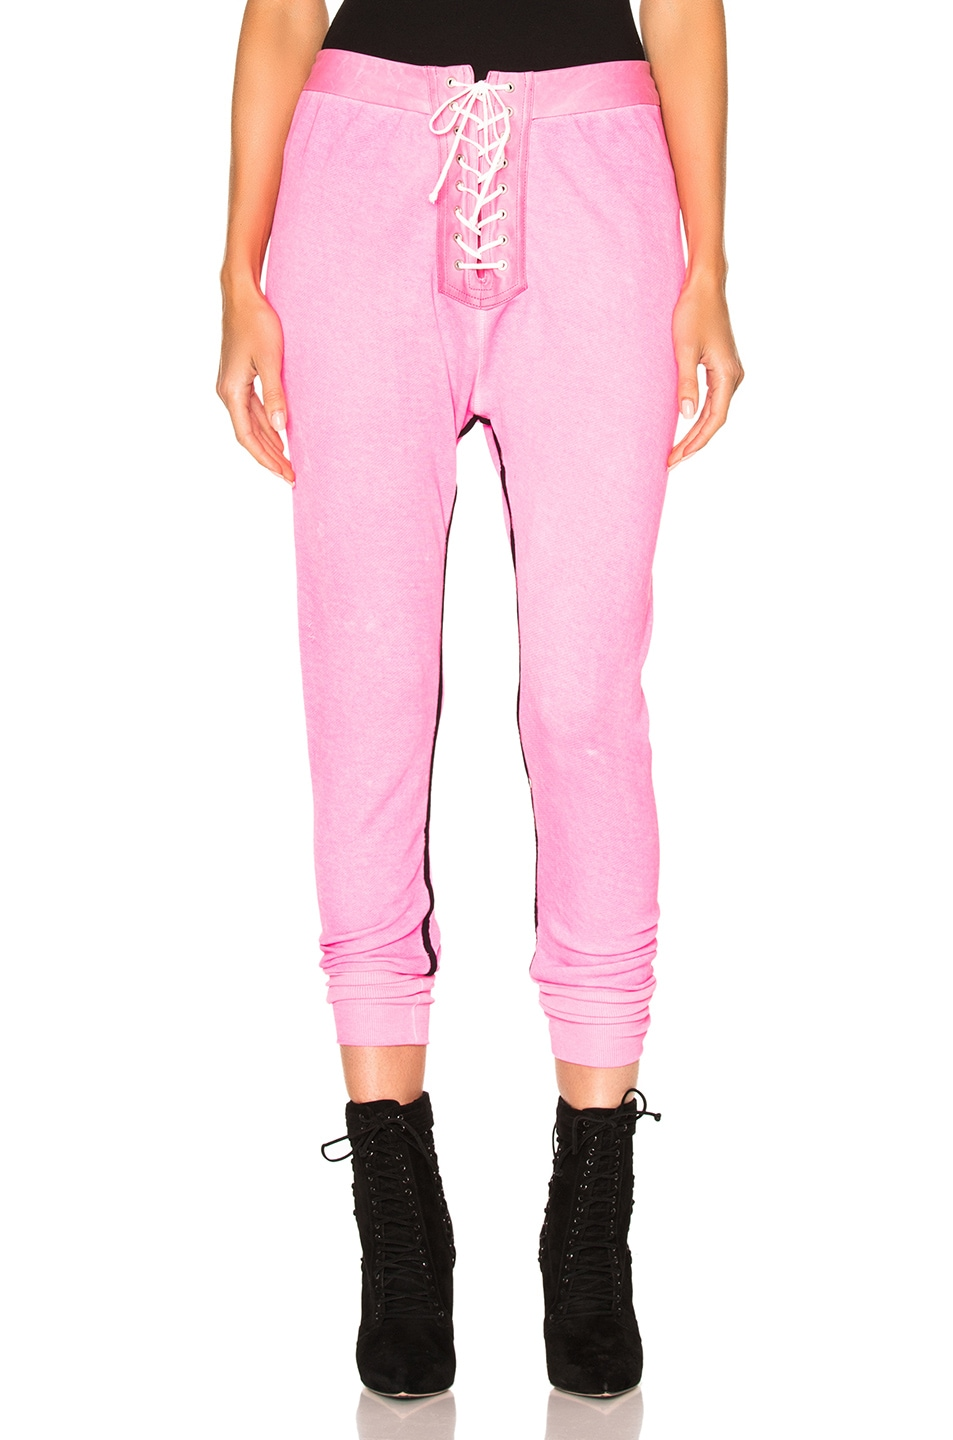 Image 1 of Unravel for FWRD Lace Up Leggings in Sunfaded Neon Pink